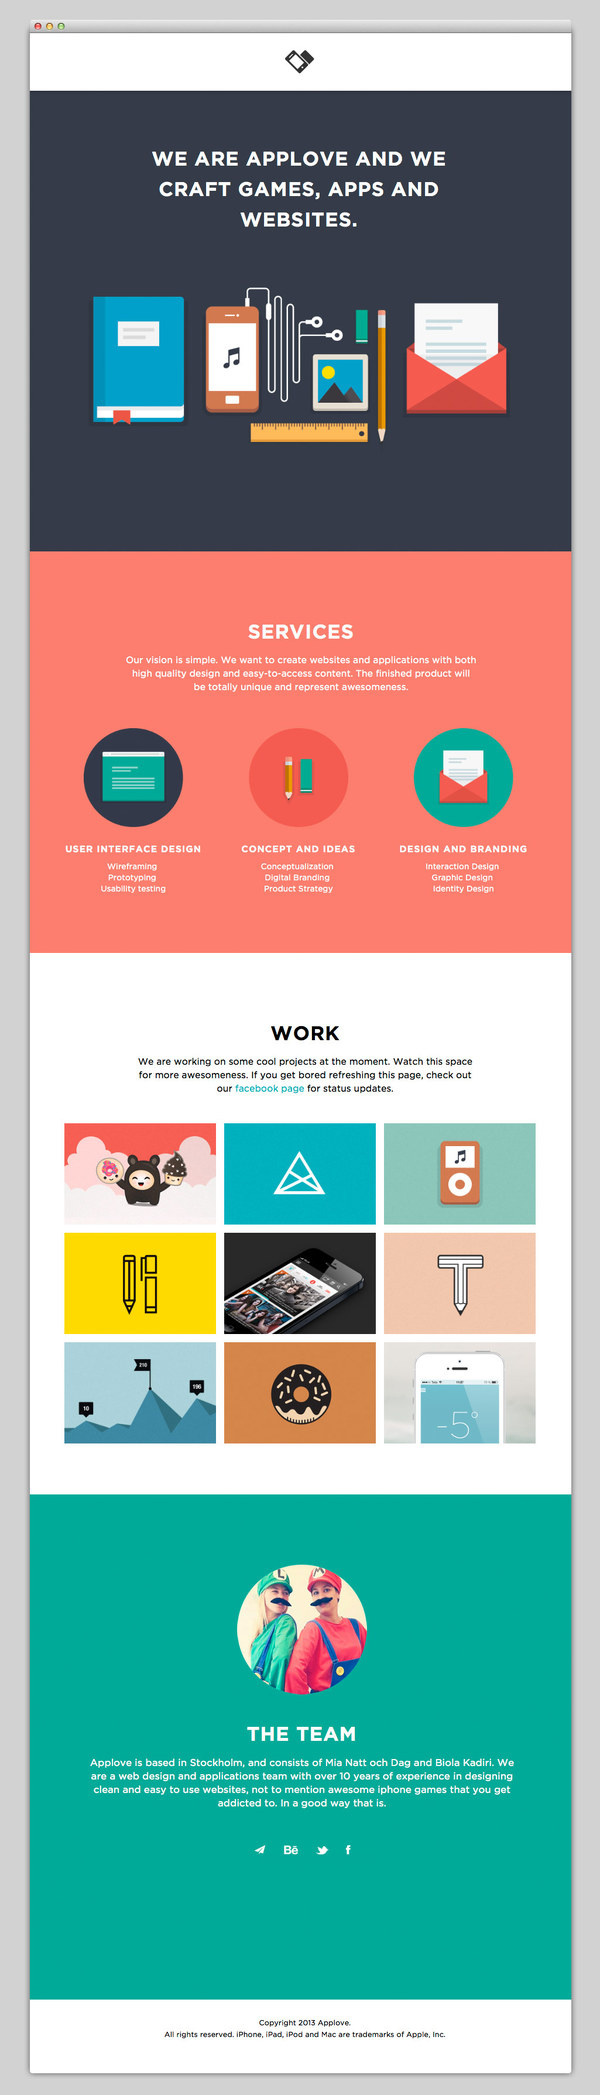 Applove #website #layout #design #web